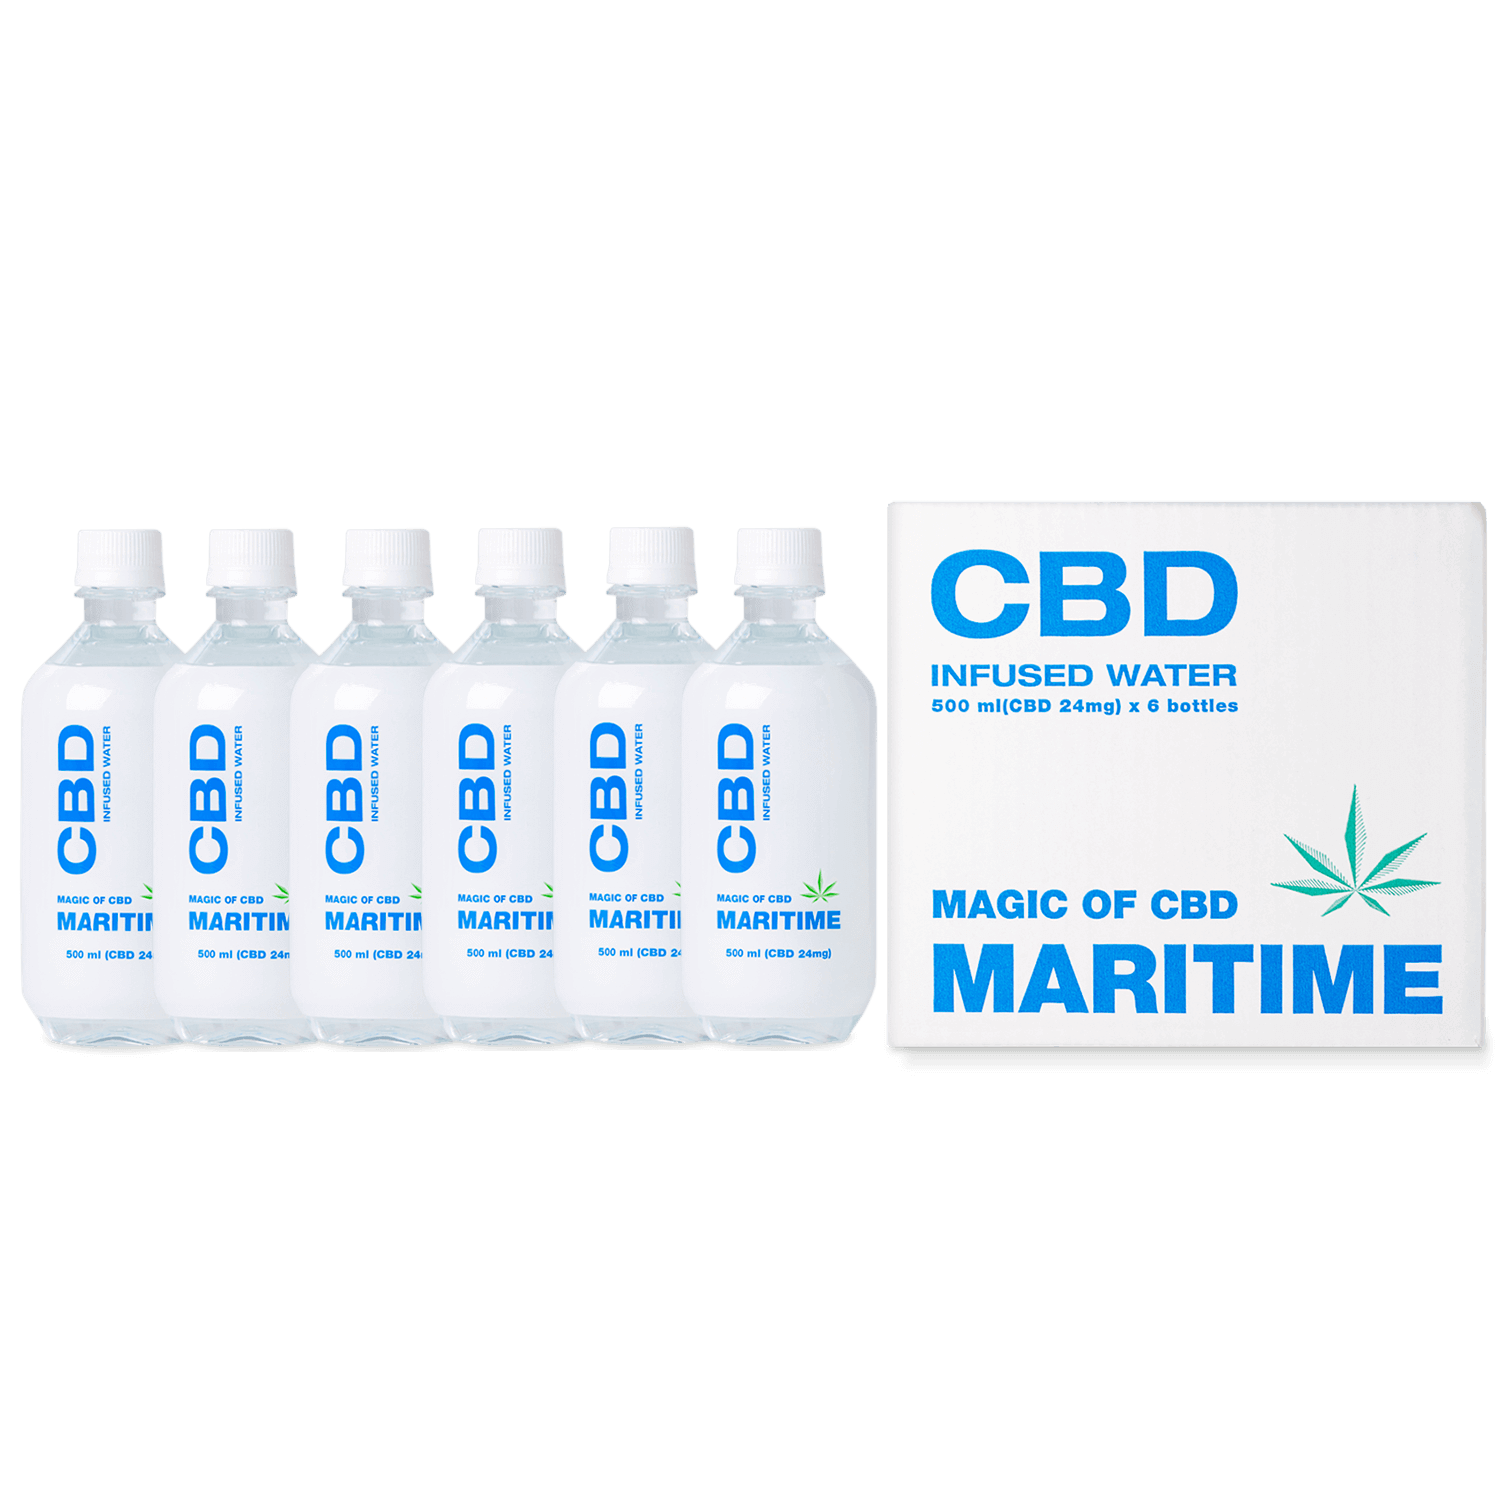 MARITIME CBD Water 500ml - set of 6 bottles